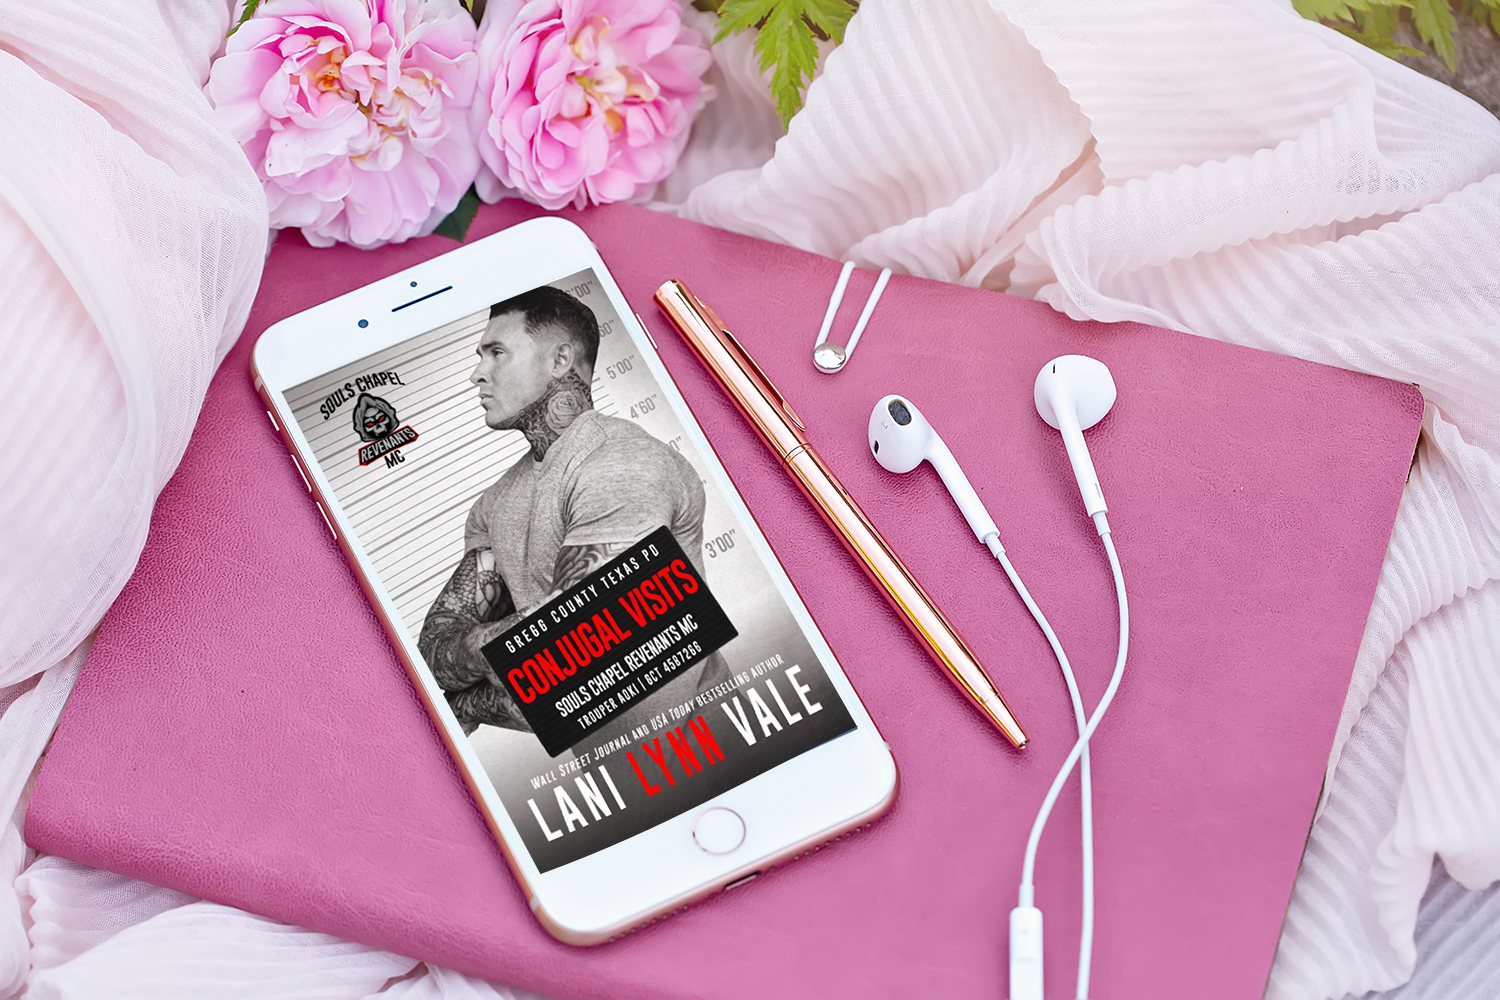 Conjugal Visits by Lani Lynn Vale Review at Wickedly Romance